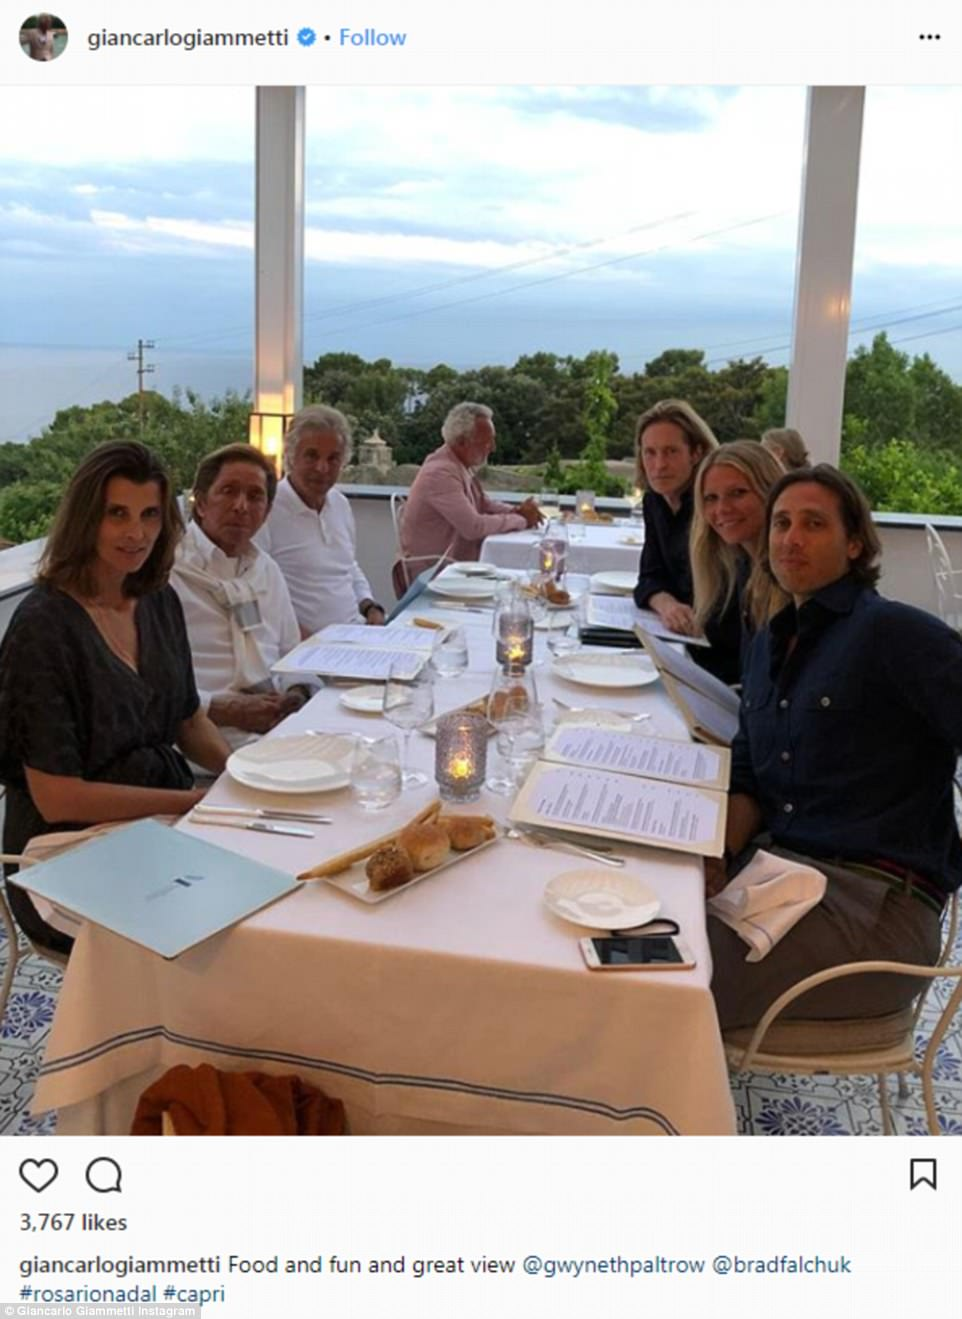 And now time for dinner: Giammetti also shared this photo from Sunday evening where the party was enjoying dinner al fresco with several friends